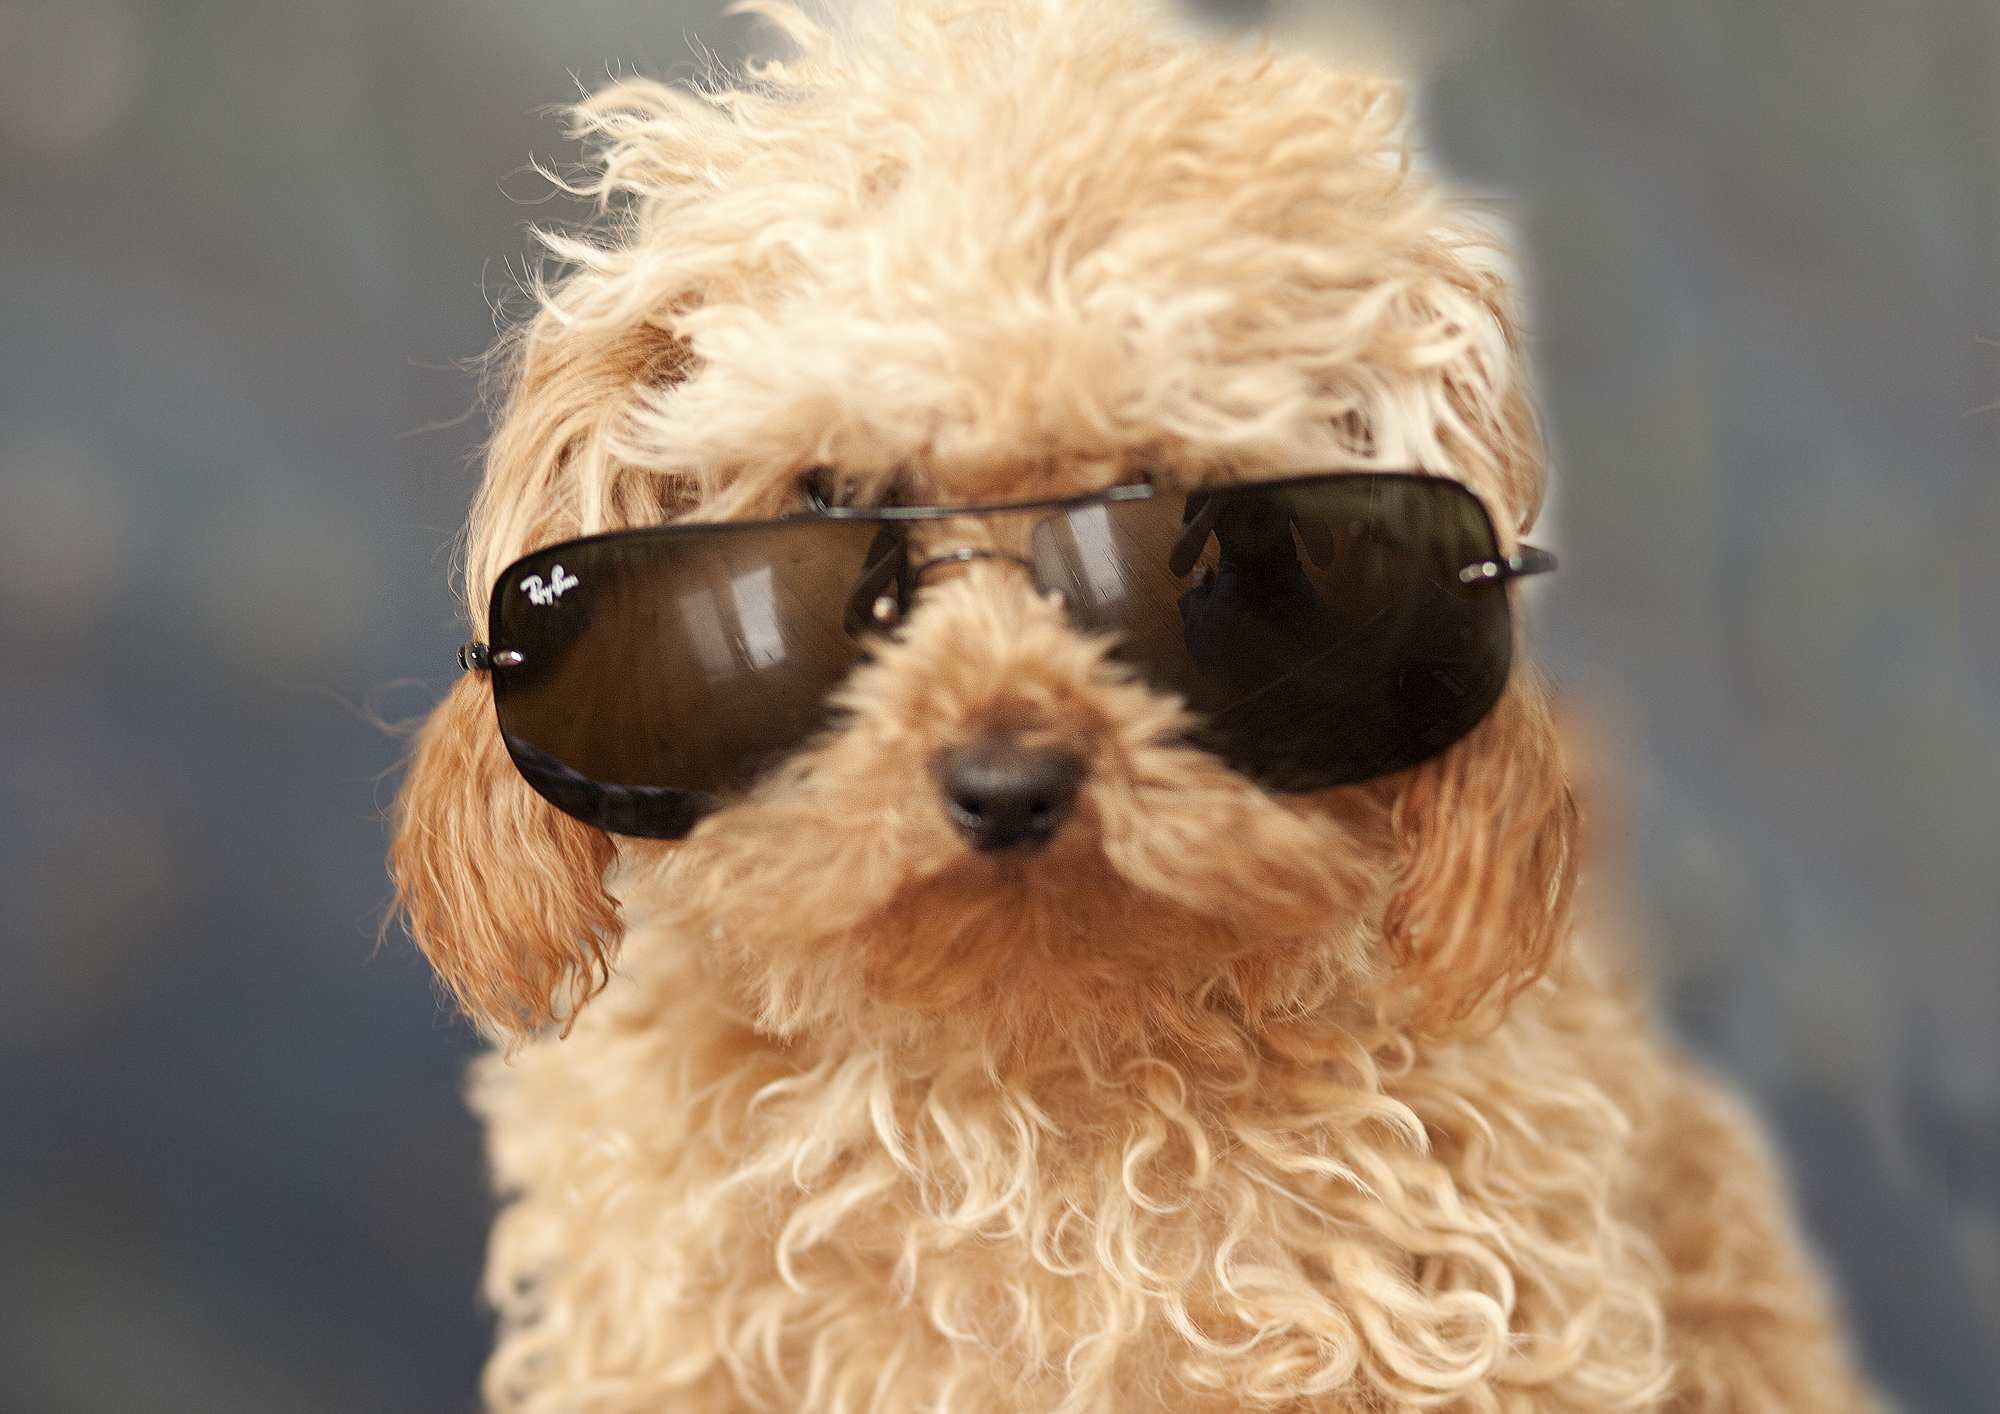 Tilly with sunglasses.jpg